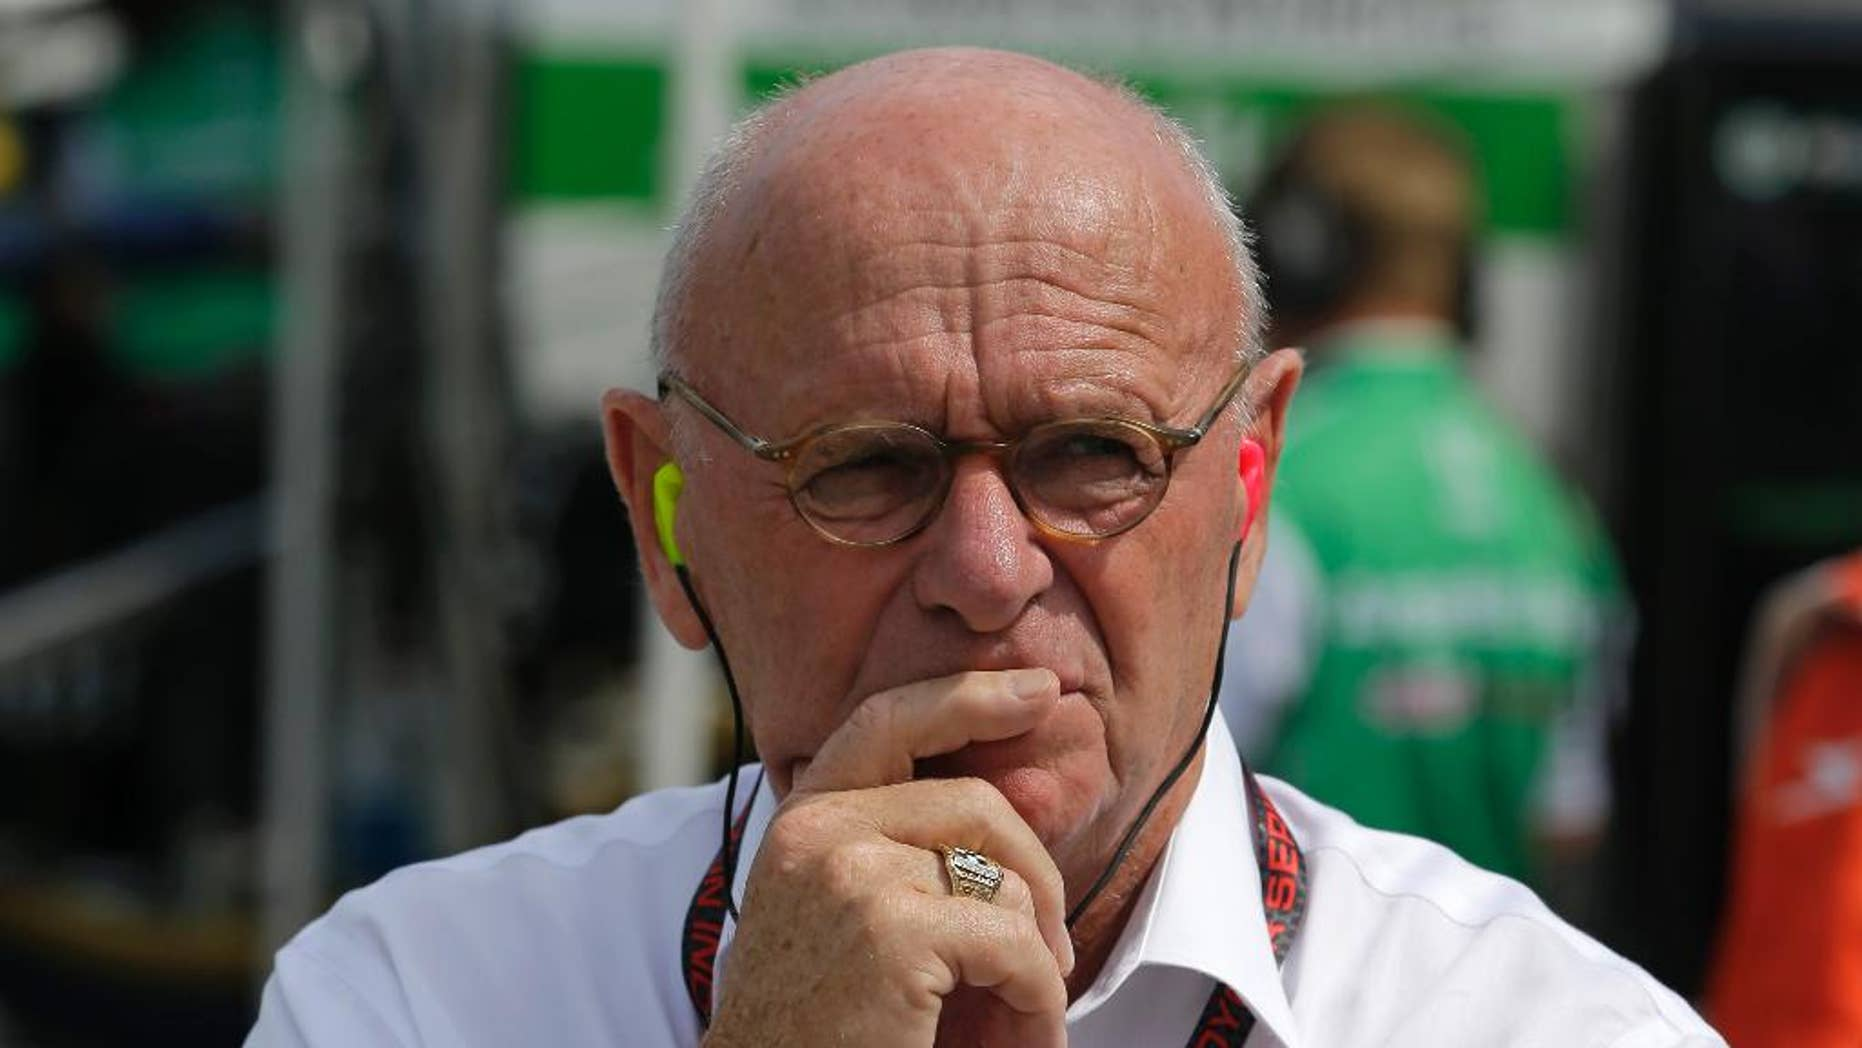 In this photo taken on Friday, May 8, 2015, Derrick Walker, President of operations and competition of IndyCar watches during practice for the Grand Prix of Indianapolis auto race at the Indianapolis Motor Speedway in Indianapolis. Derrick Walker might be one of the most liked officials in the IndyCar Series. He also has one of the toughest jobs. (AP Photo/Darron Cummings)